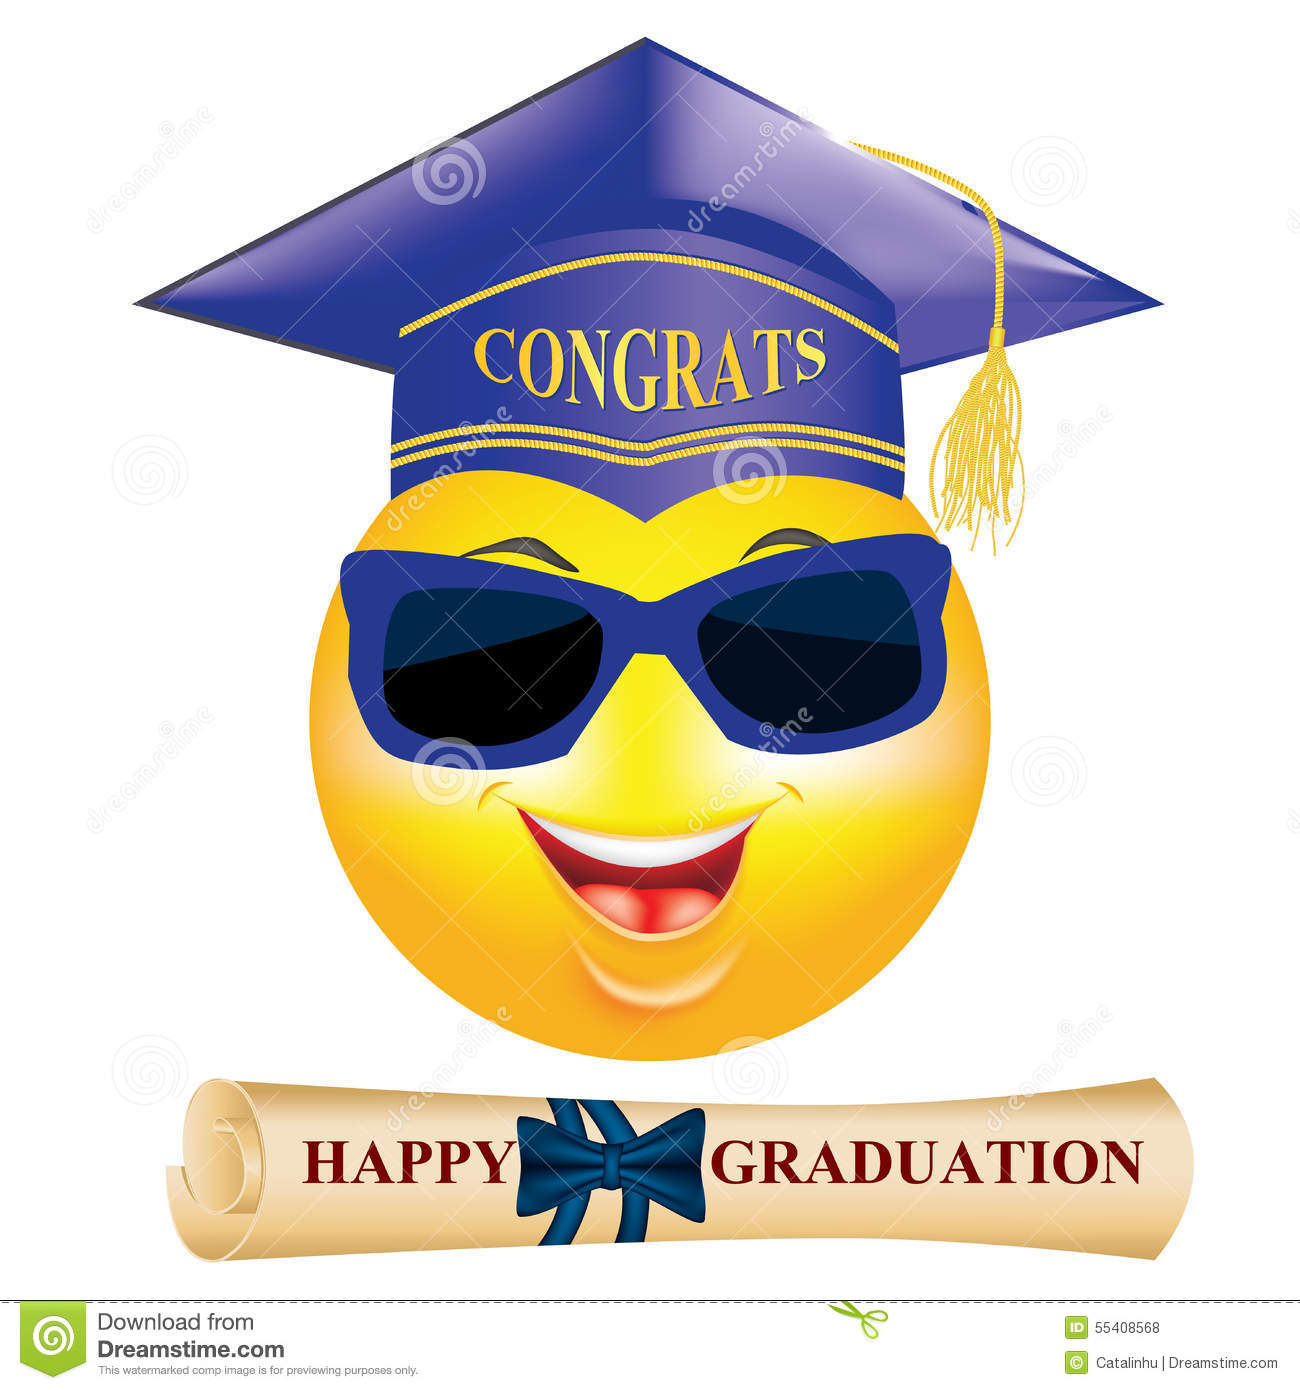 Happy Graduation Greeting Card For Print. Royalty-Free ...